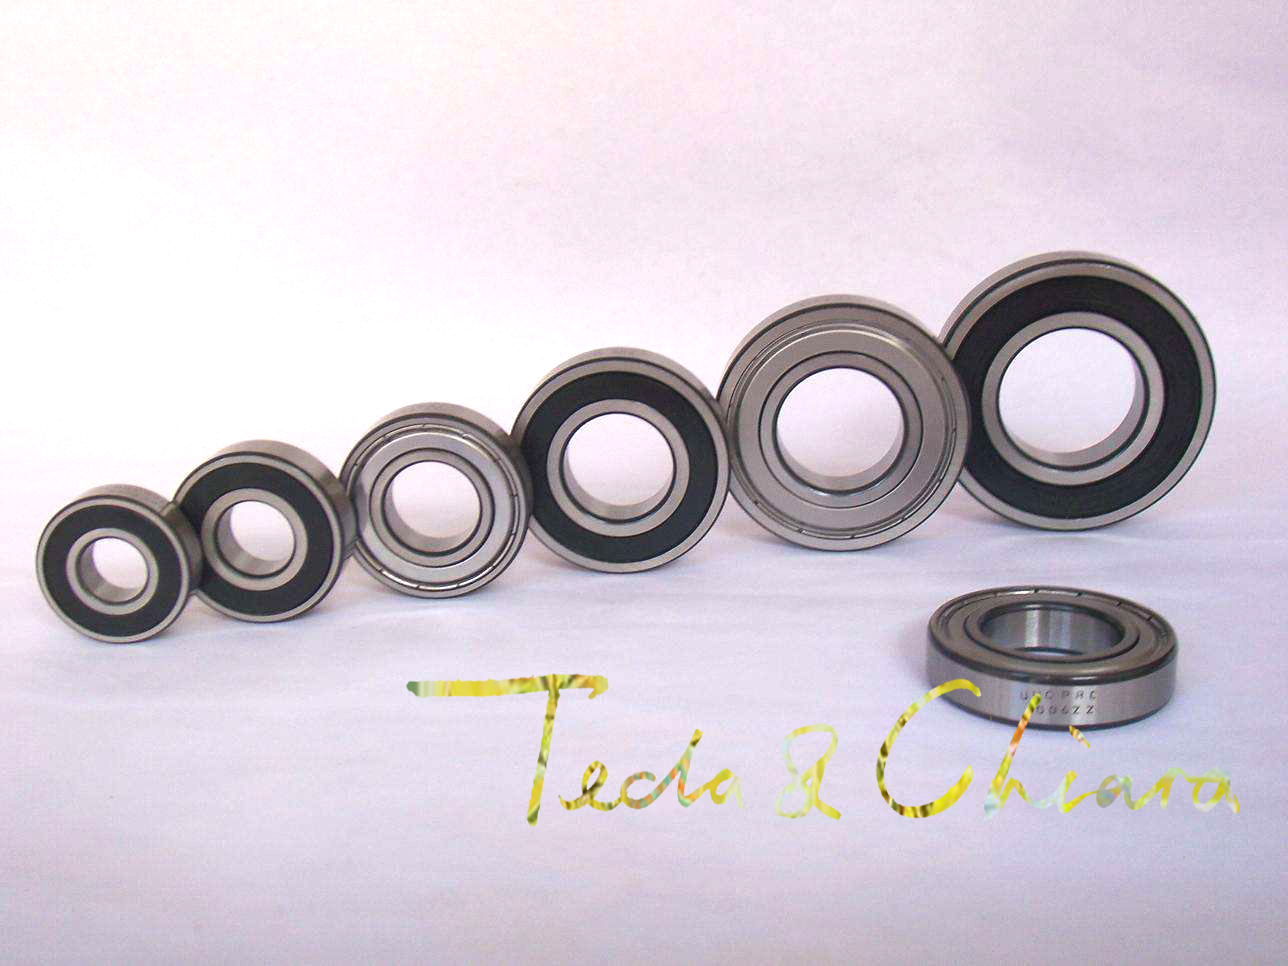 6904 6904ZZ 6904RS 6904-2Z 6904Z 6904-2RS ZZ RS RZ 2RZ Deep Groove Ball Bearings 20 x 37 x 9mm High Quality free shipping 25x47x12mm deep groove ball bearings 6005 zz 2z 6005zz bearing 6005zz 6005 2rs